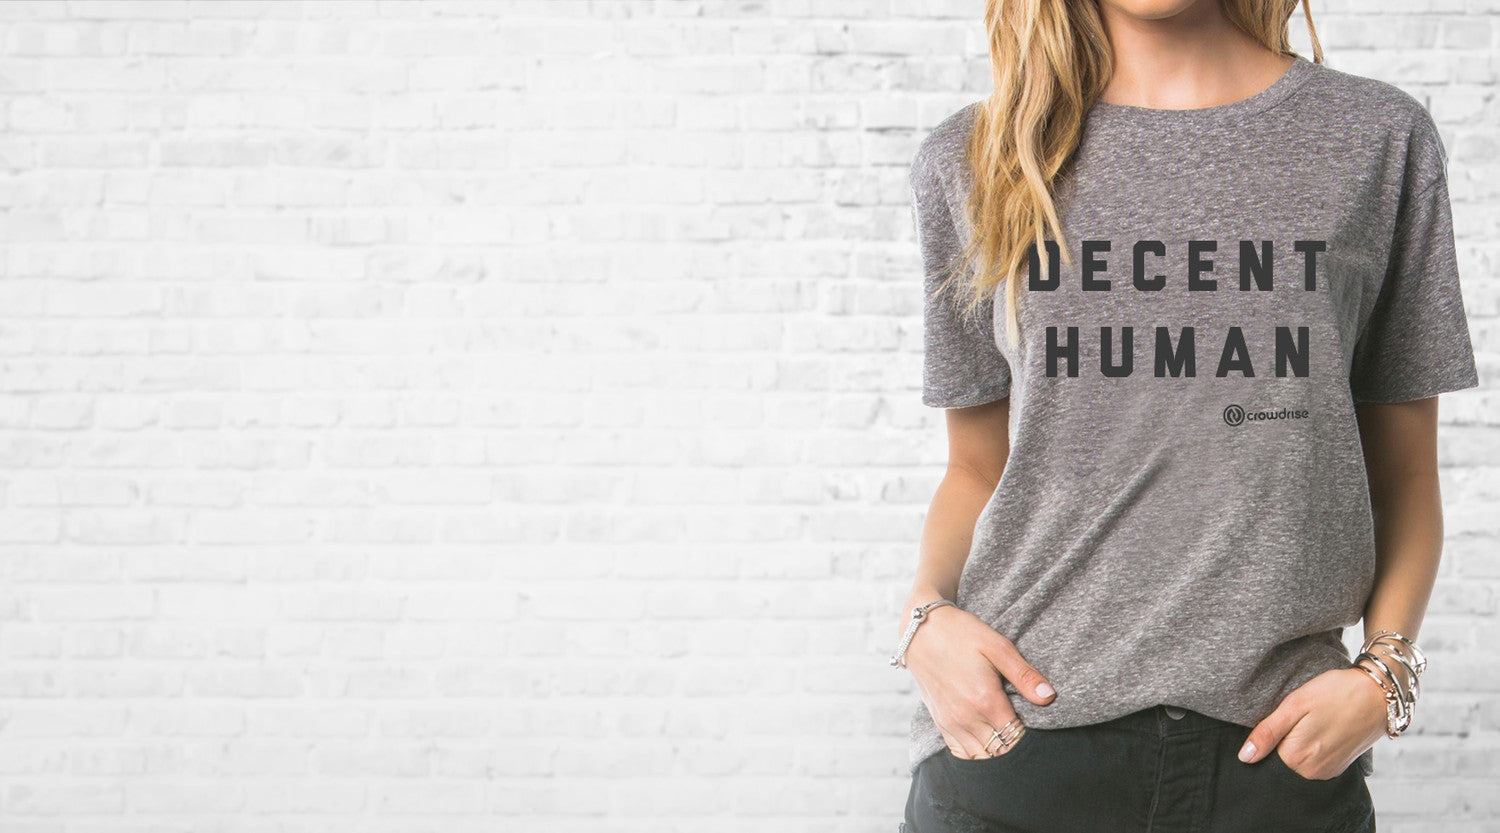 Decent Human Tees and Hoodies